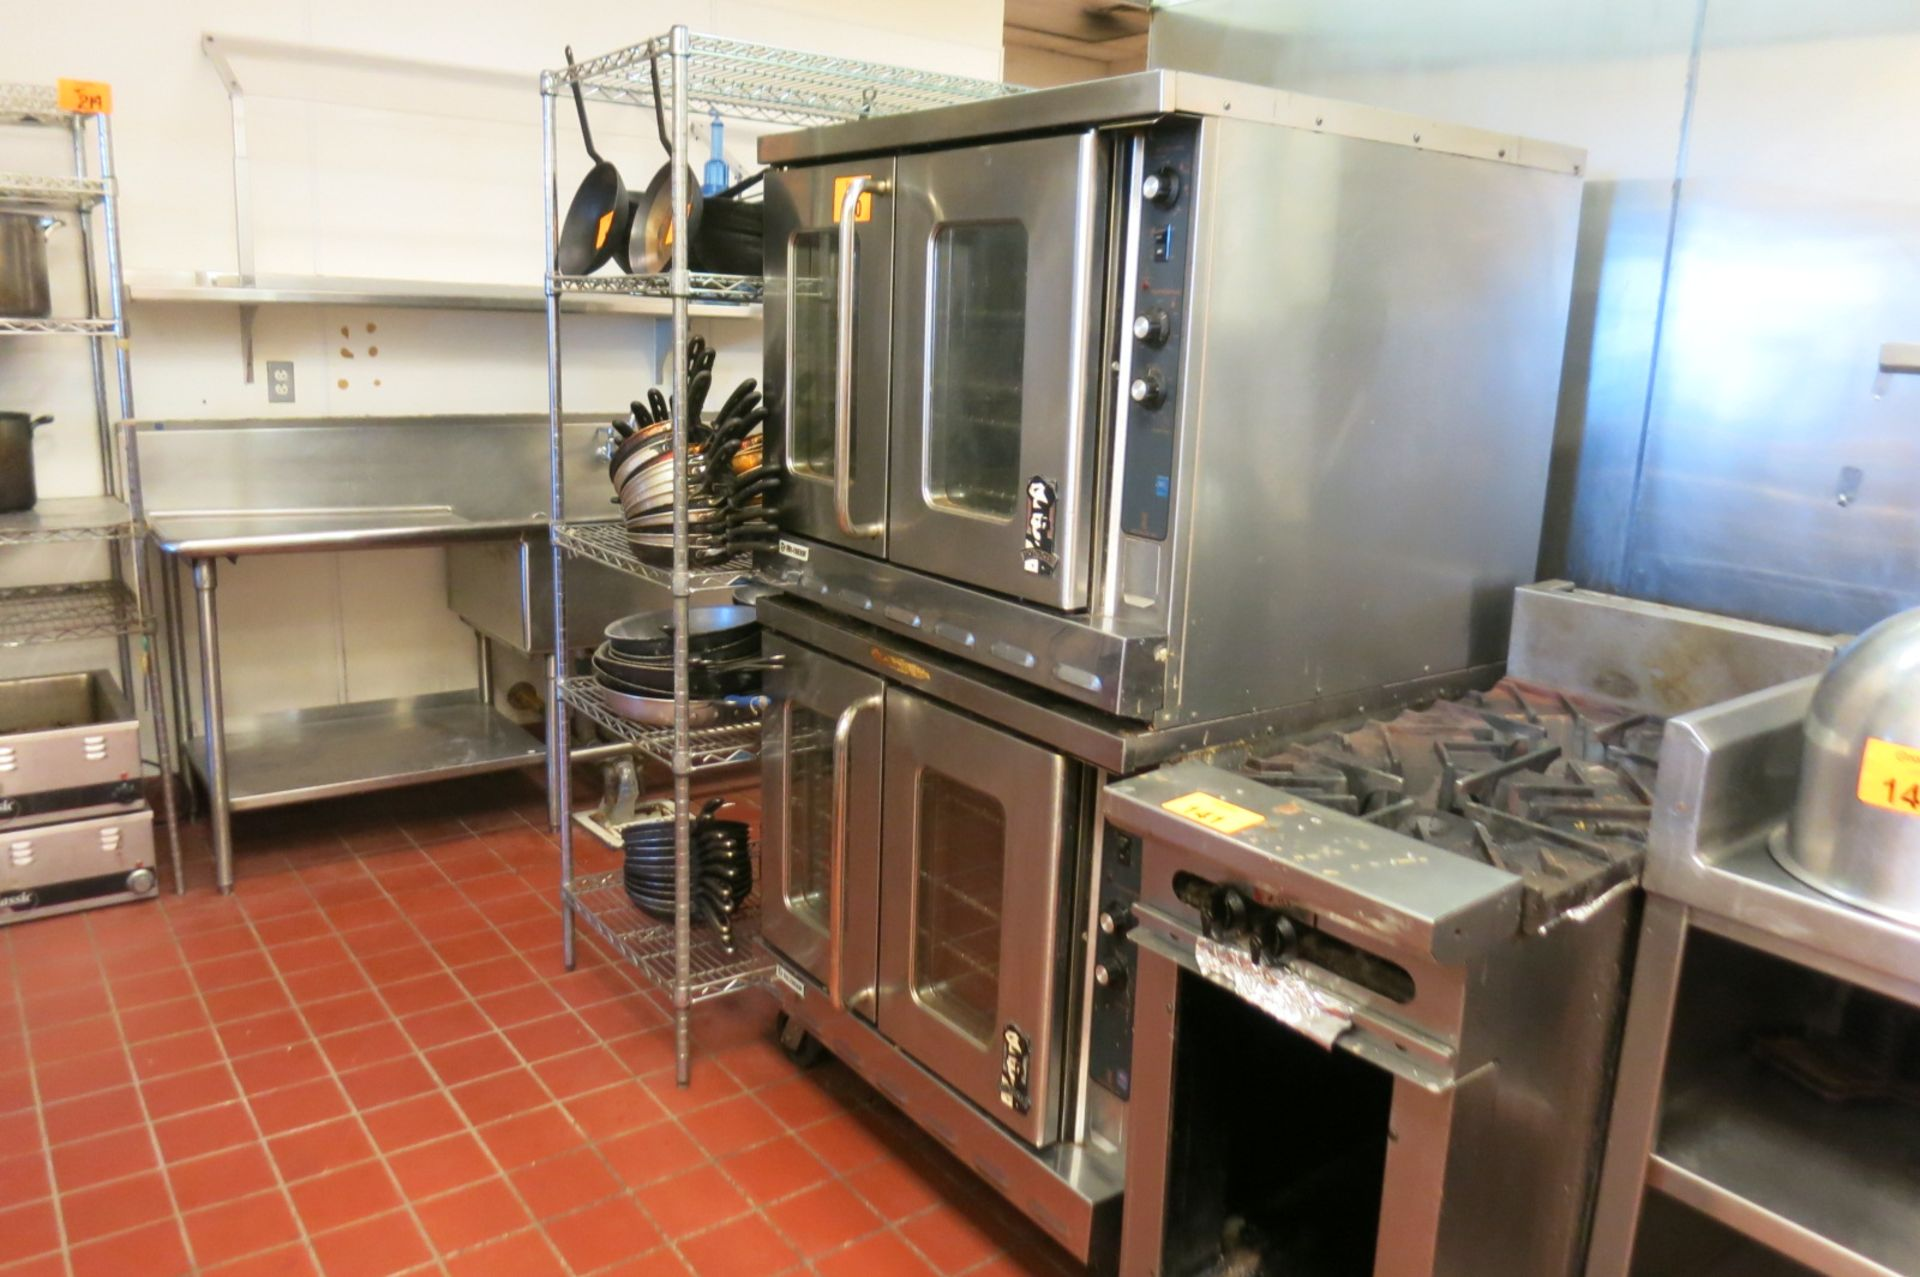 Double Oven - Image 2 of 2